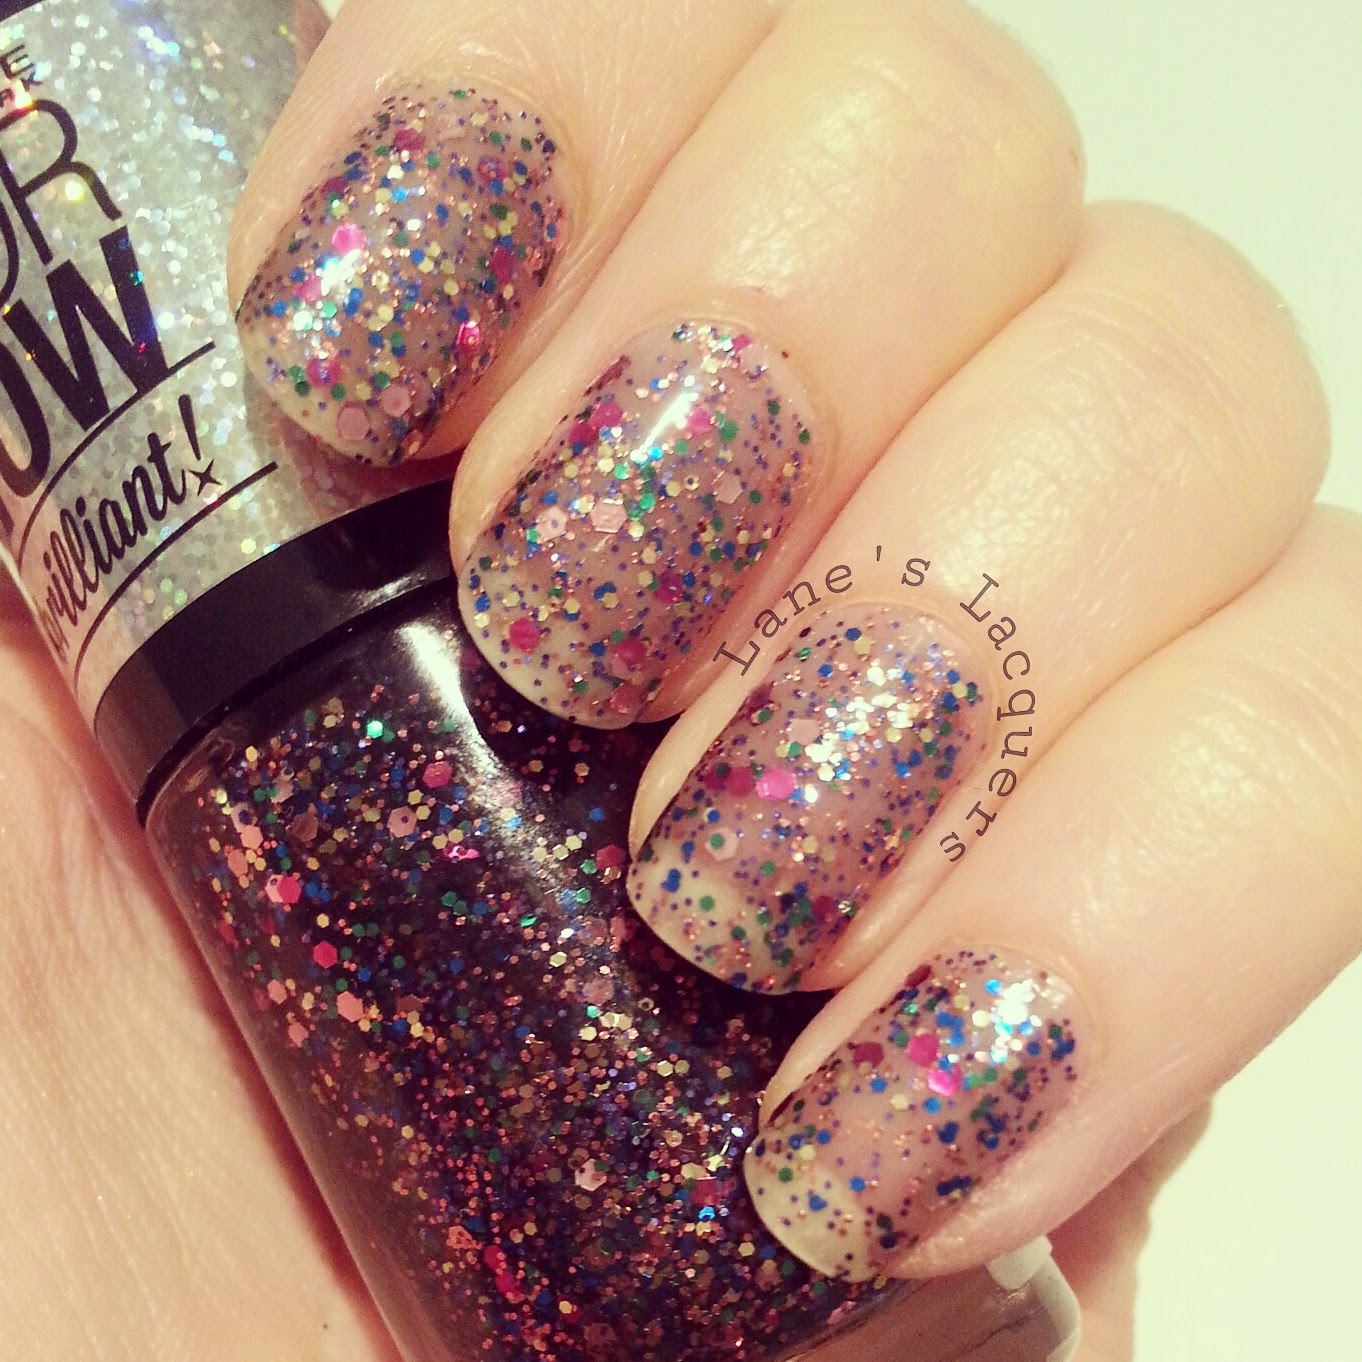 maybelline-colorshow-be-brilliant-spark-the-night-swatch-nails (2)